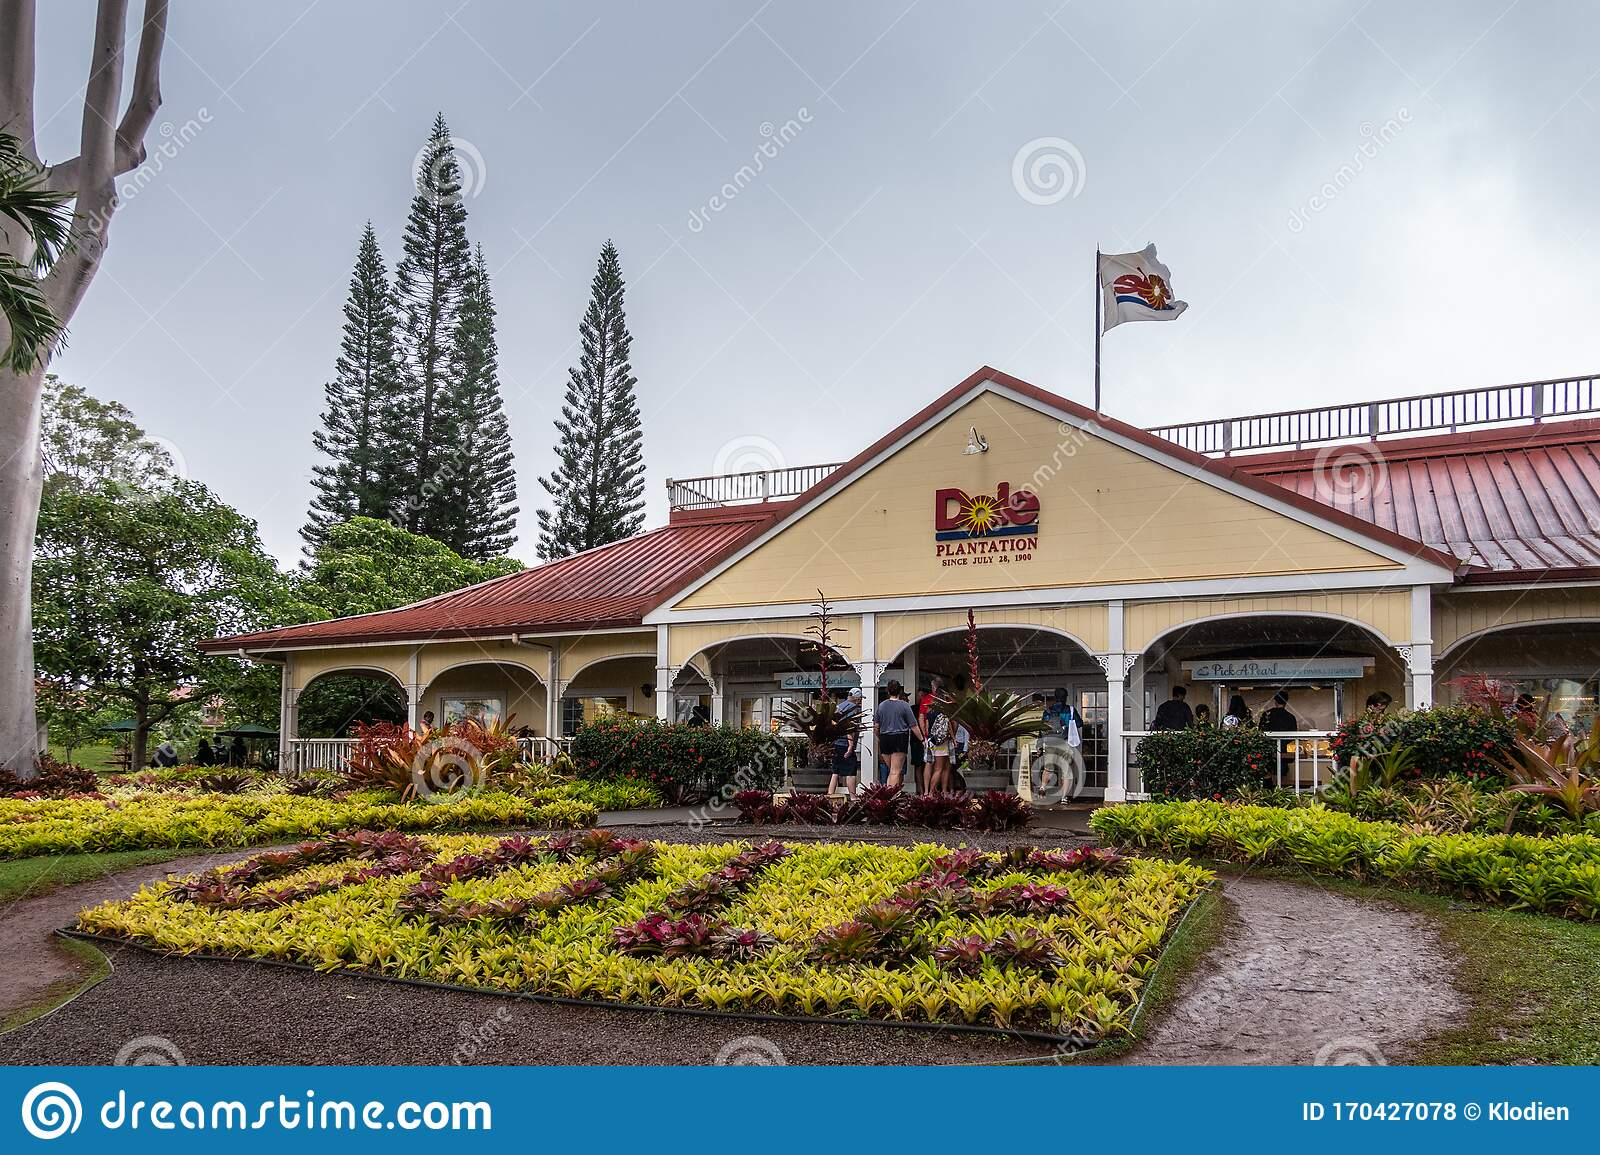 Dole Pineapple Plantation In Wahiawa Oahu Hawaii Usa Editorial Stock Photo Image Of Hawaii Garden 170427078